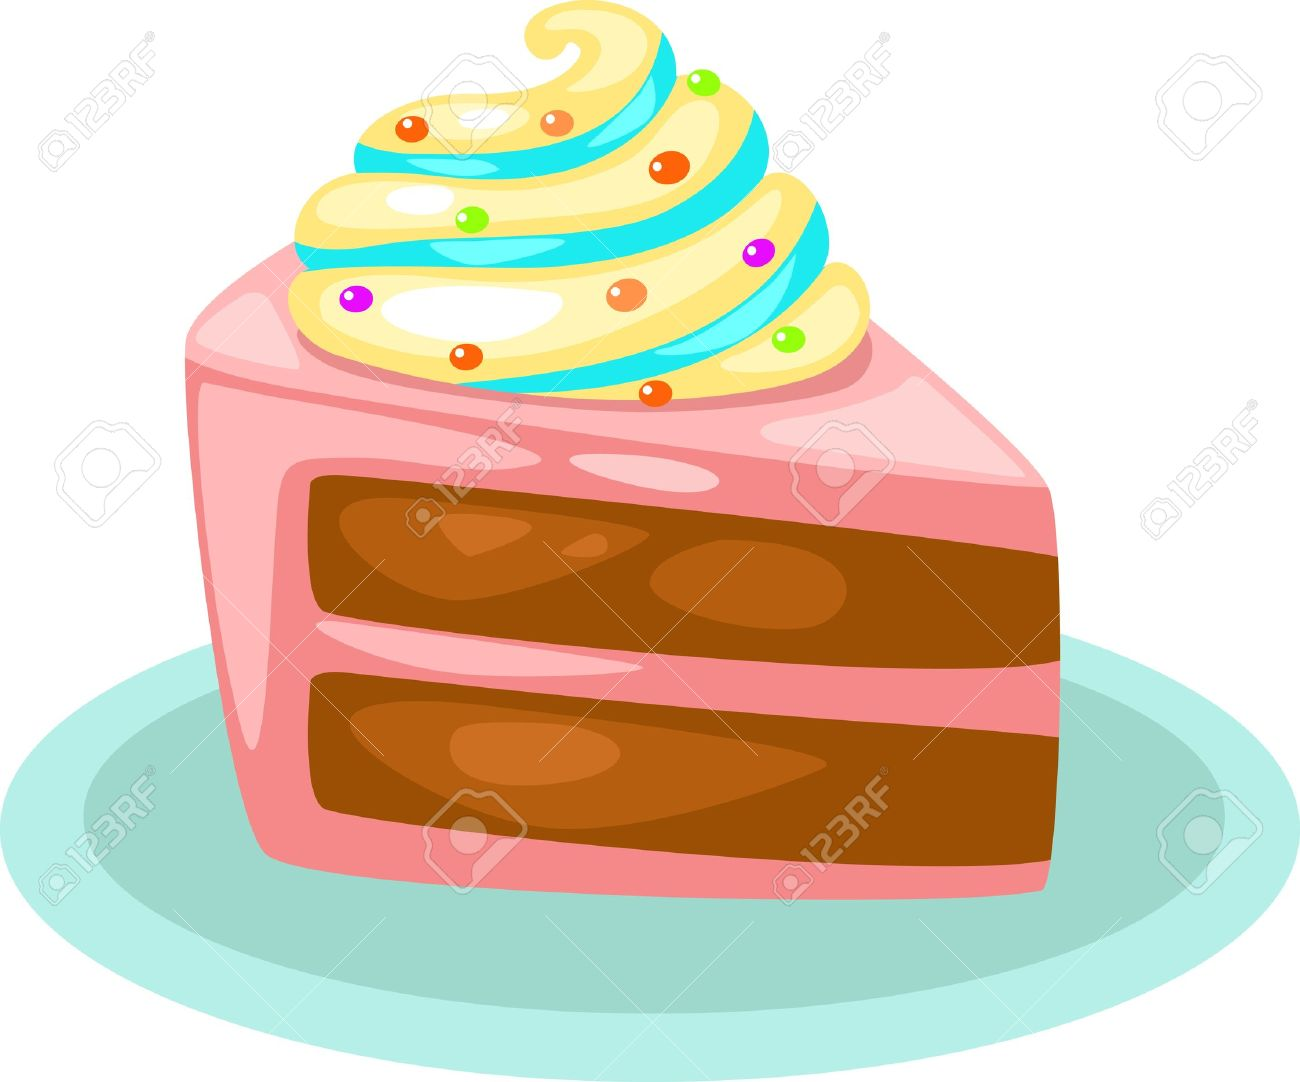 cake vector illustration royalty free cliparts vectors and stock rh 123rf com cake vector freepik cake vector png